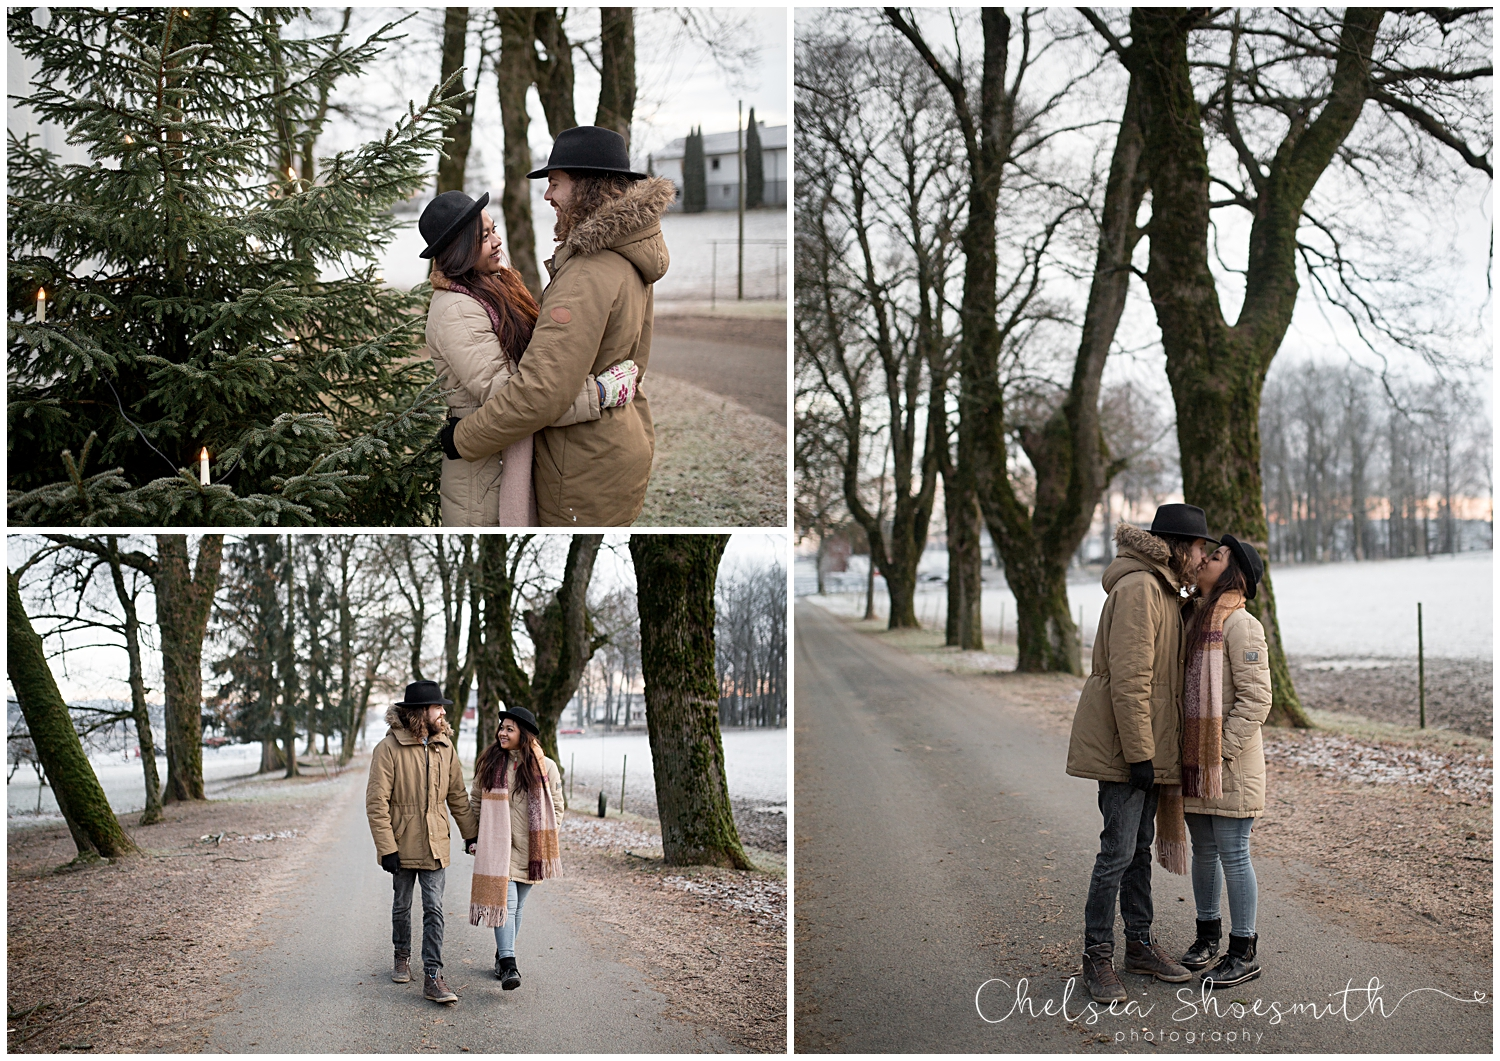 169Total # (1) Norway Photographs Chelsea Shoesmith Photography (of)